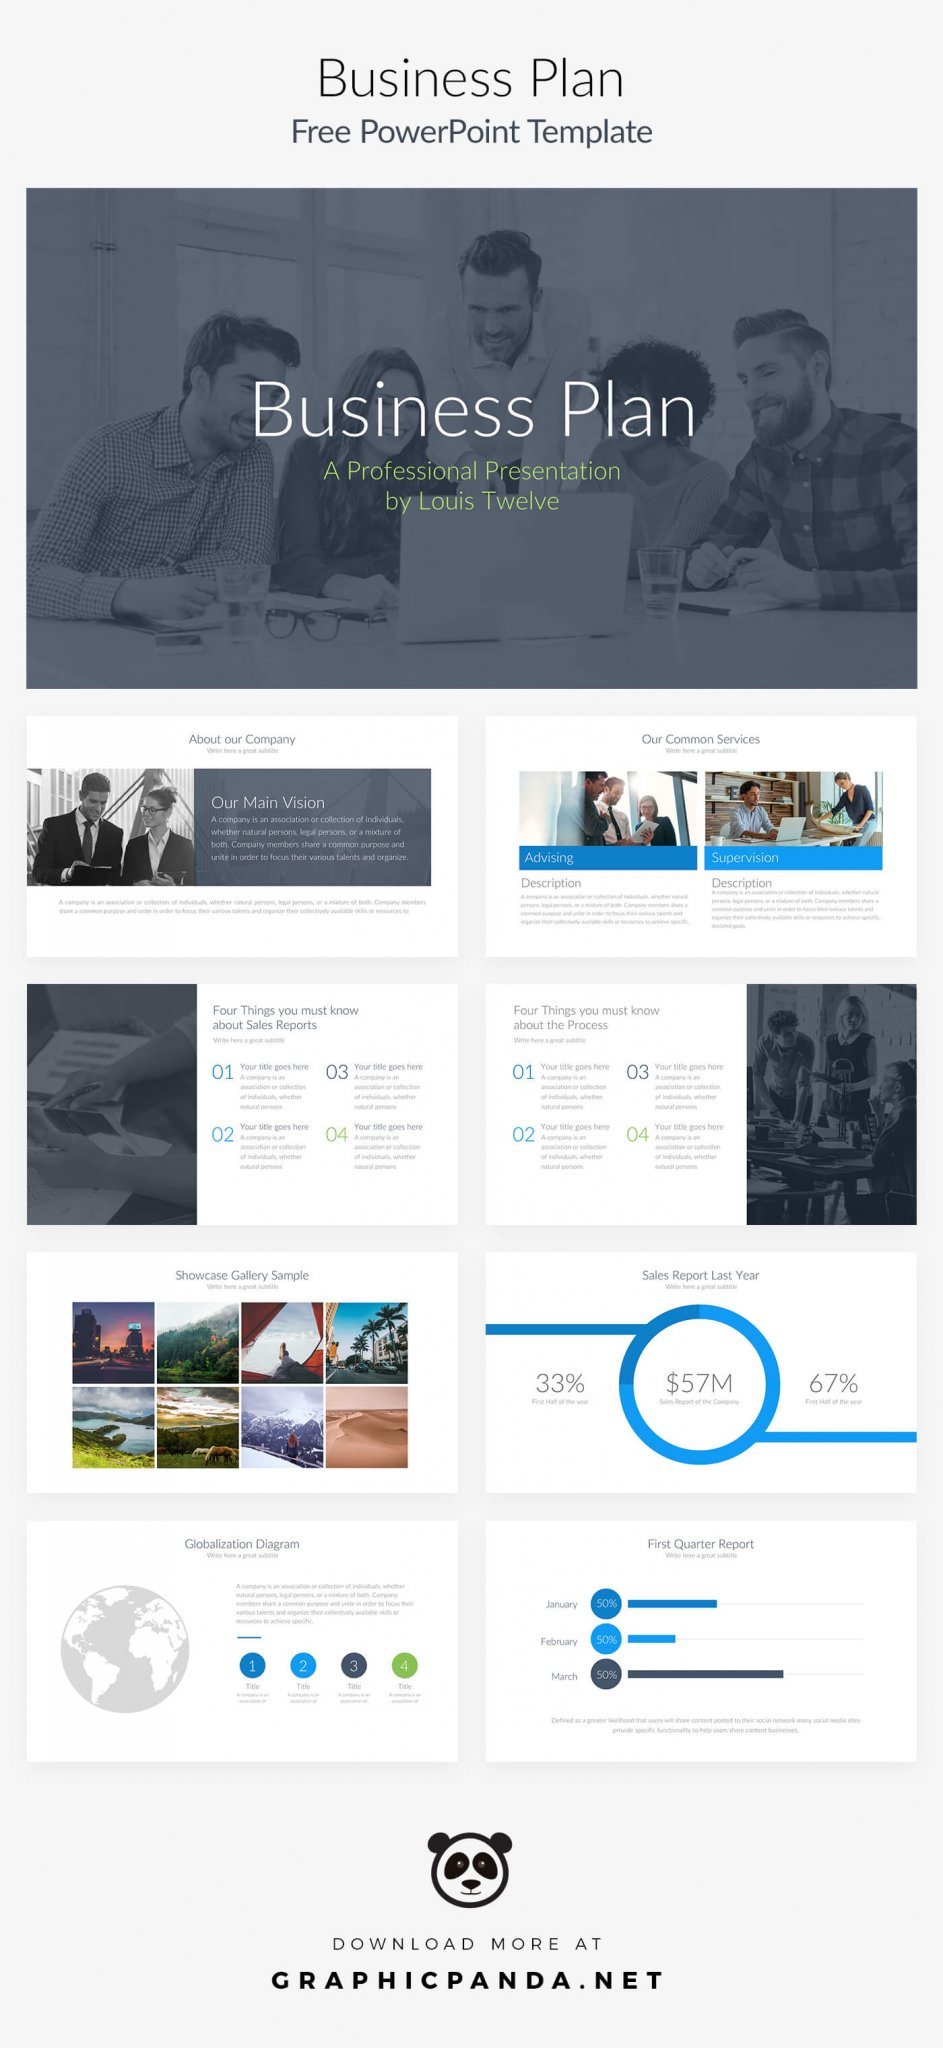 Free business plan powerpoint presentation template business plan free powerpoint themes powerpoint templates toneelgroepblik Choice Image